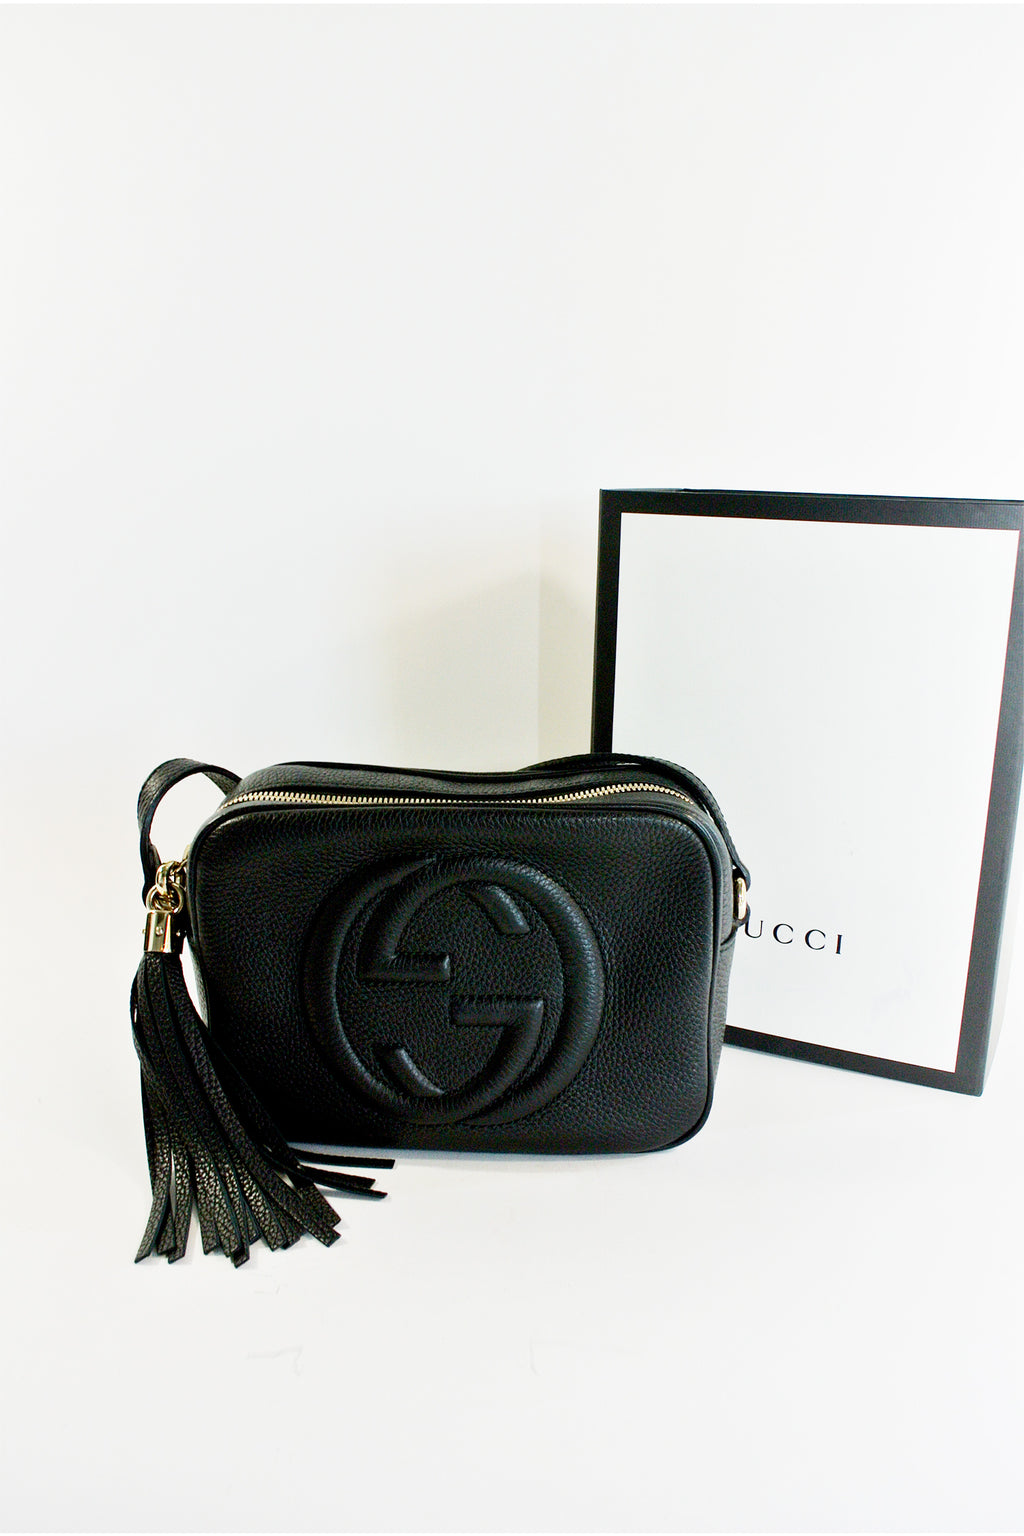 Gucci Soho Black Disco Bag (LIKE-NEW)